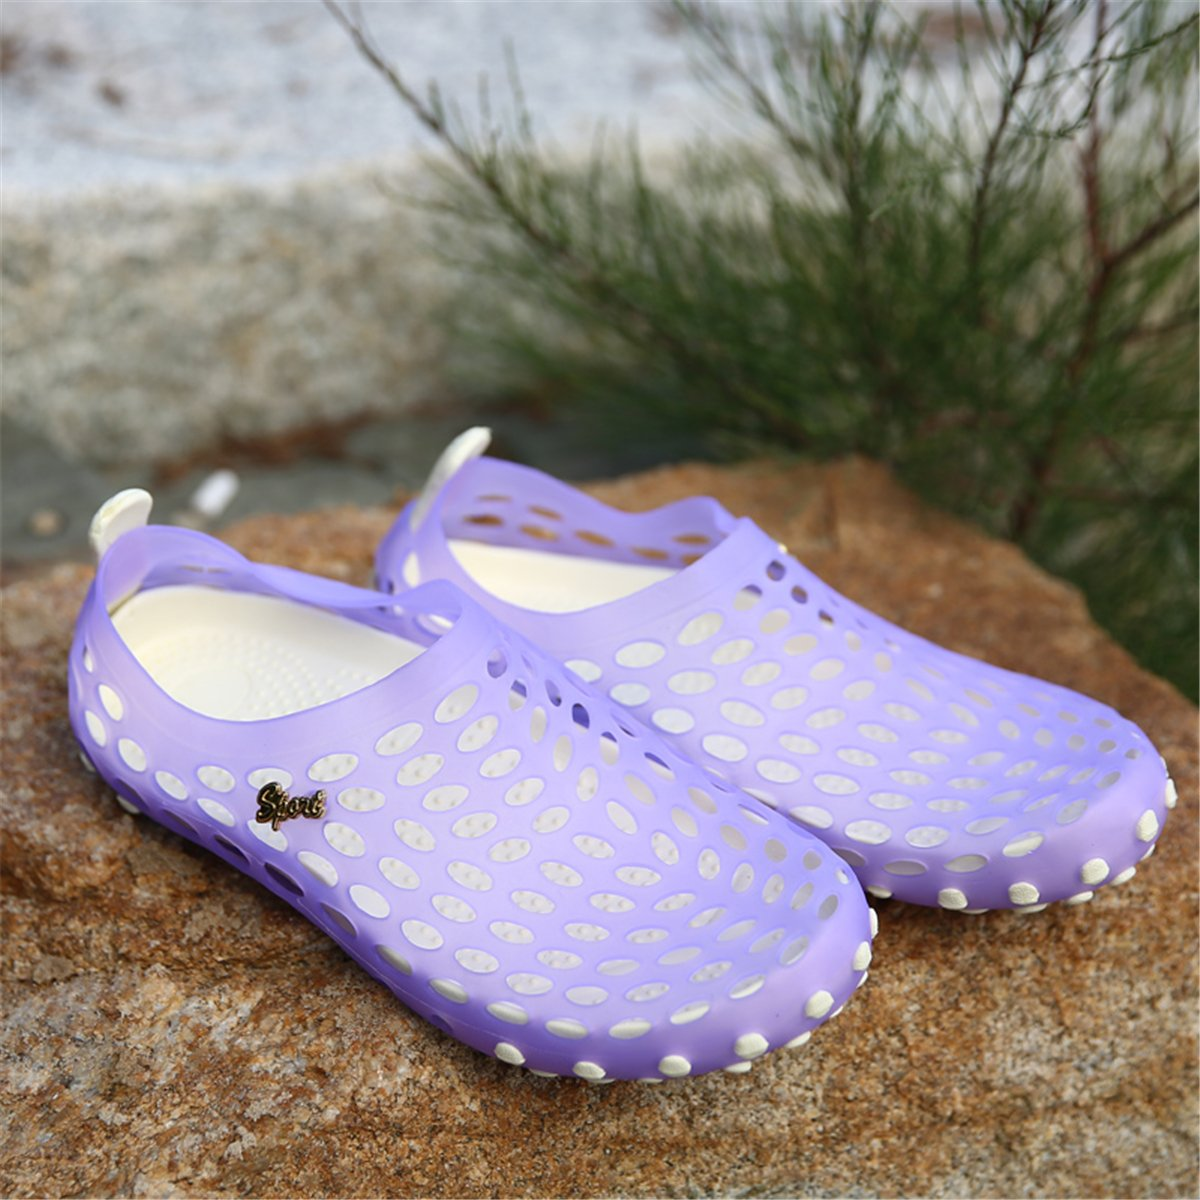 7f5ff1606acd Pairlers Water Shoes for Women Sandals Shower Swim Pool Beach River Shoes  Aqua Comfort Garden Clogs ...